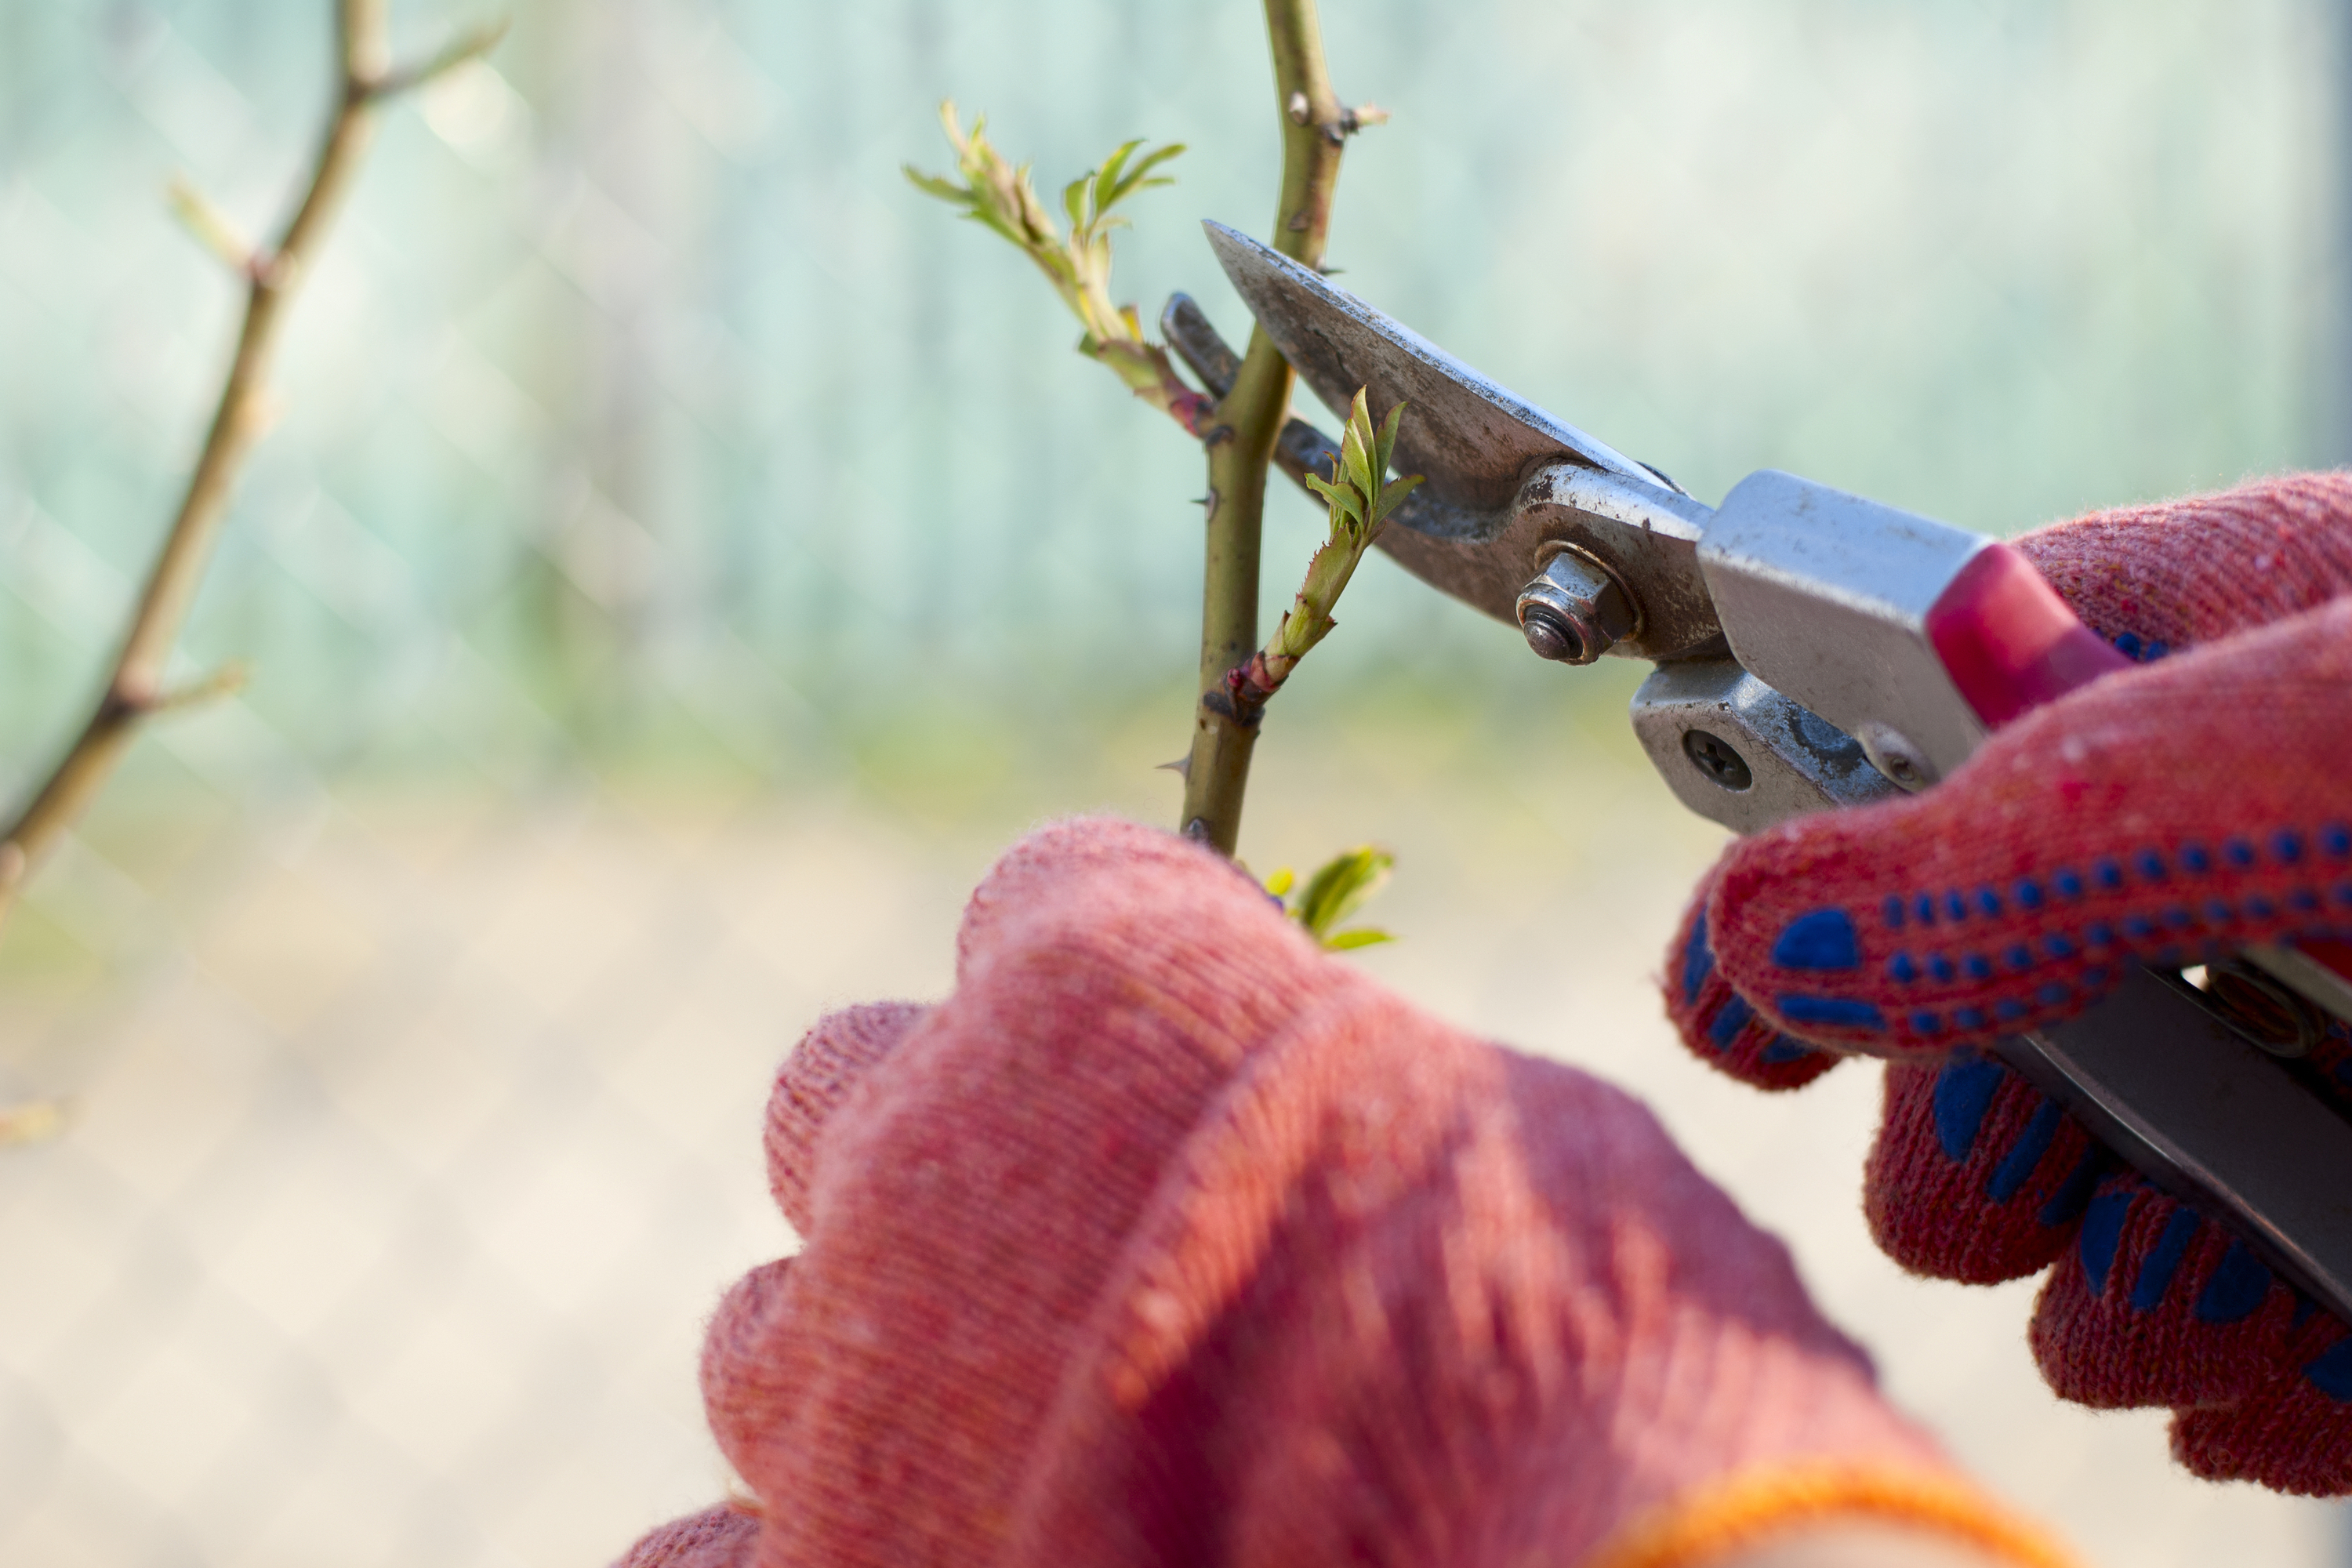 Fall pruning is one of the best things you can do for your plants